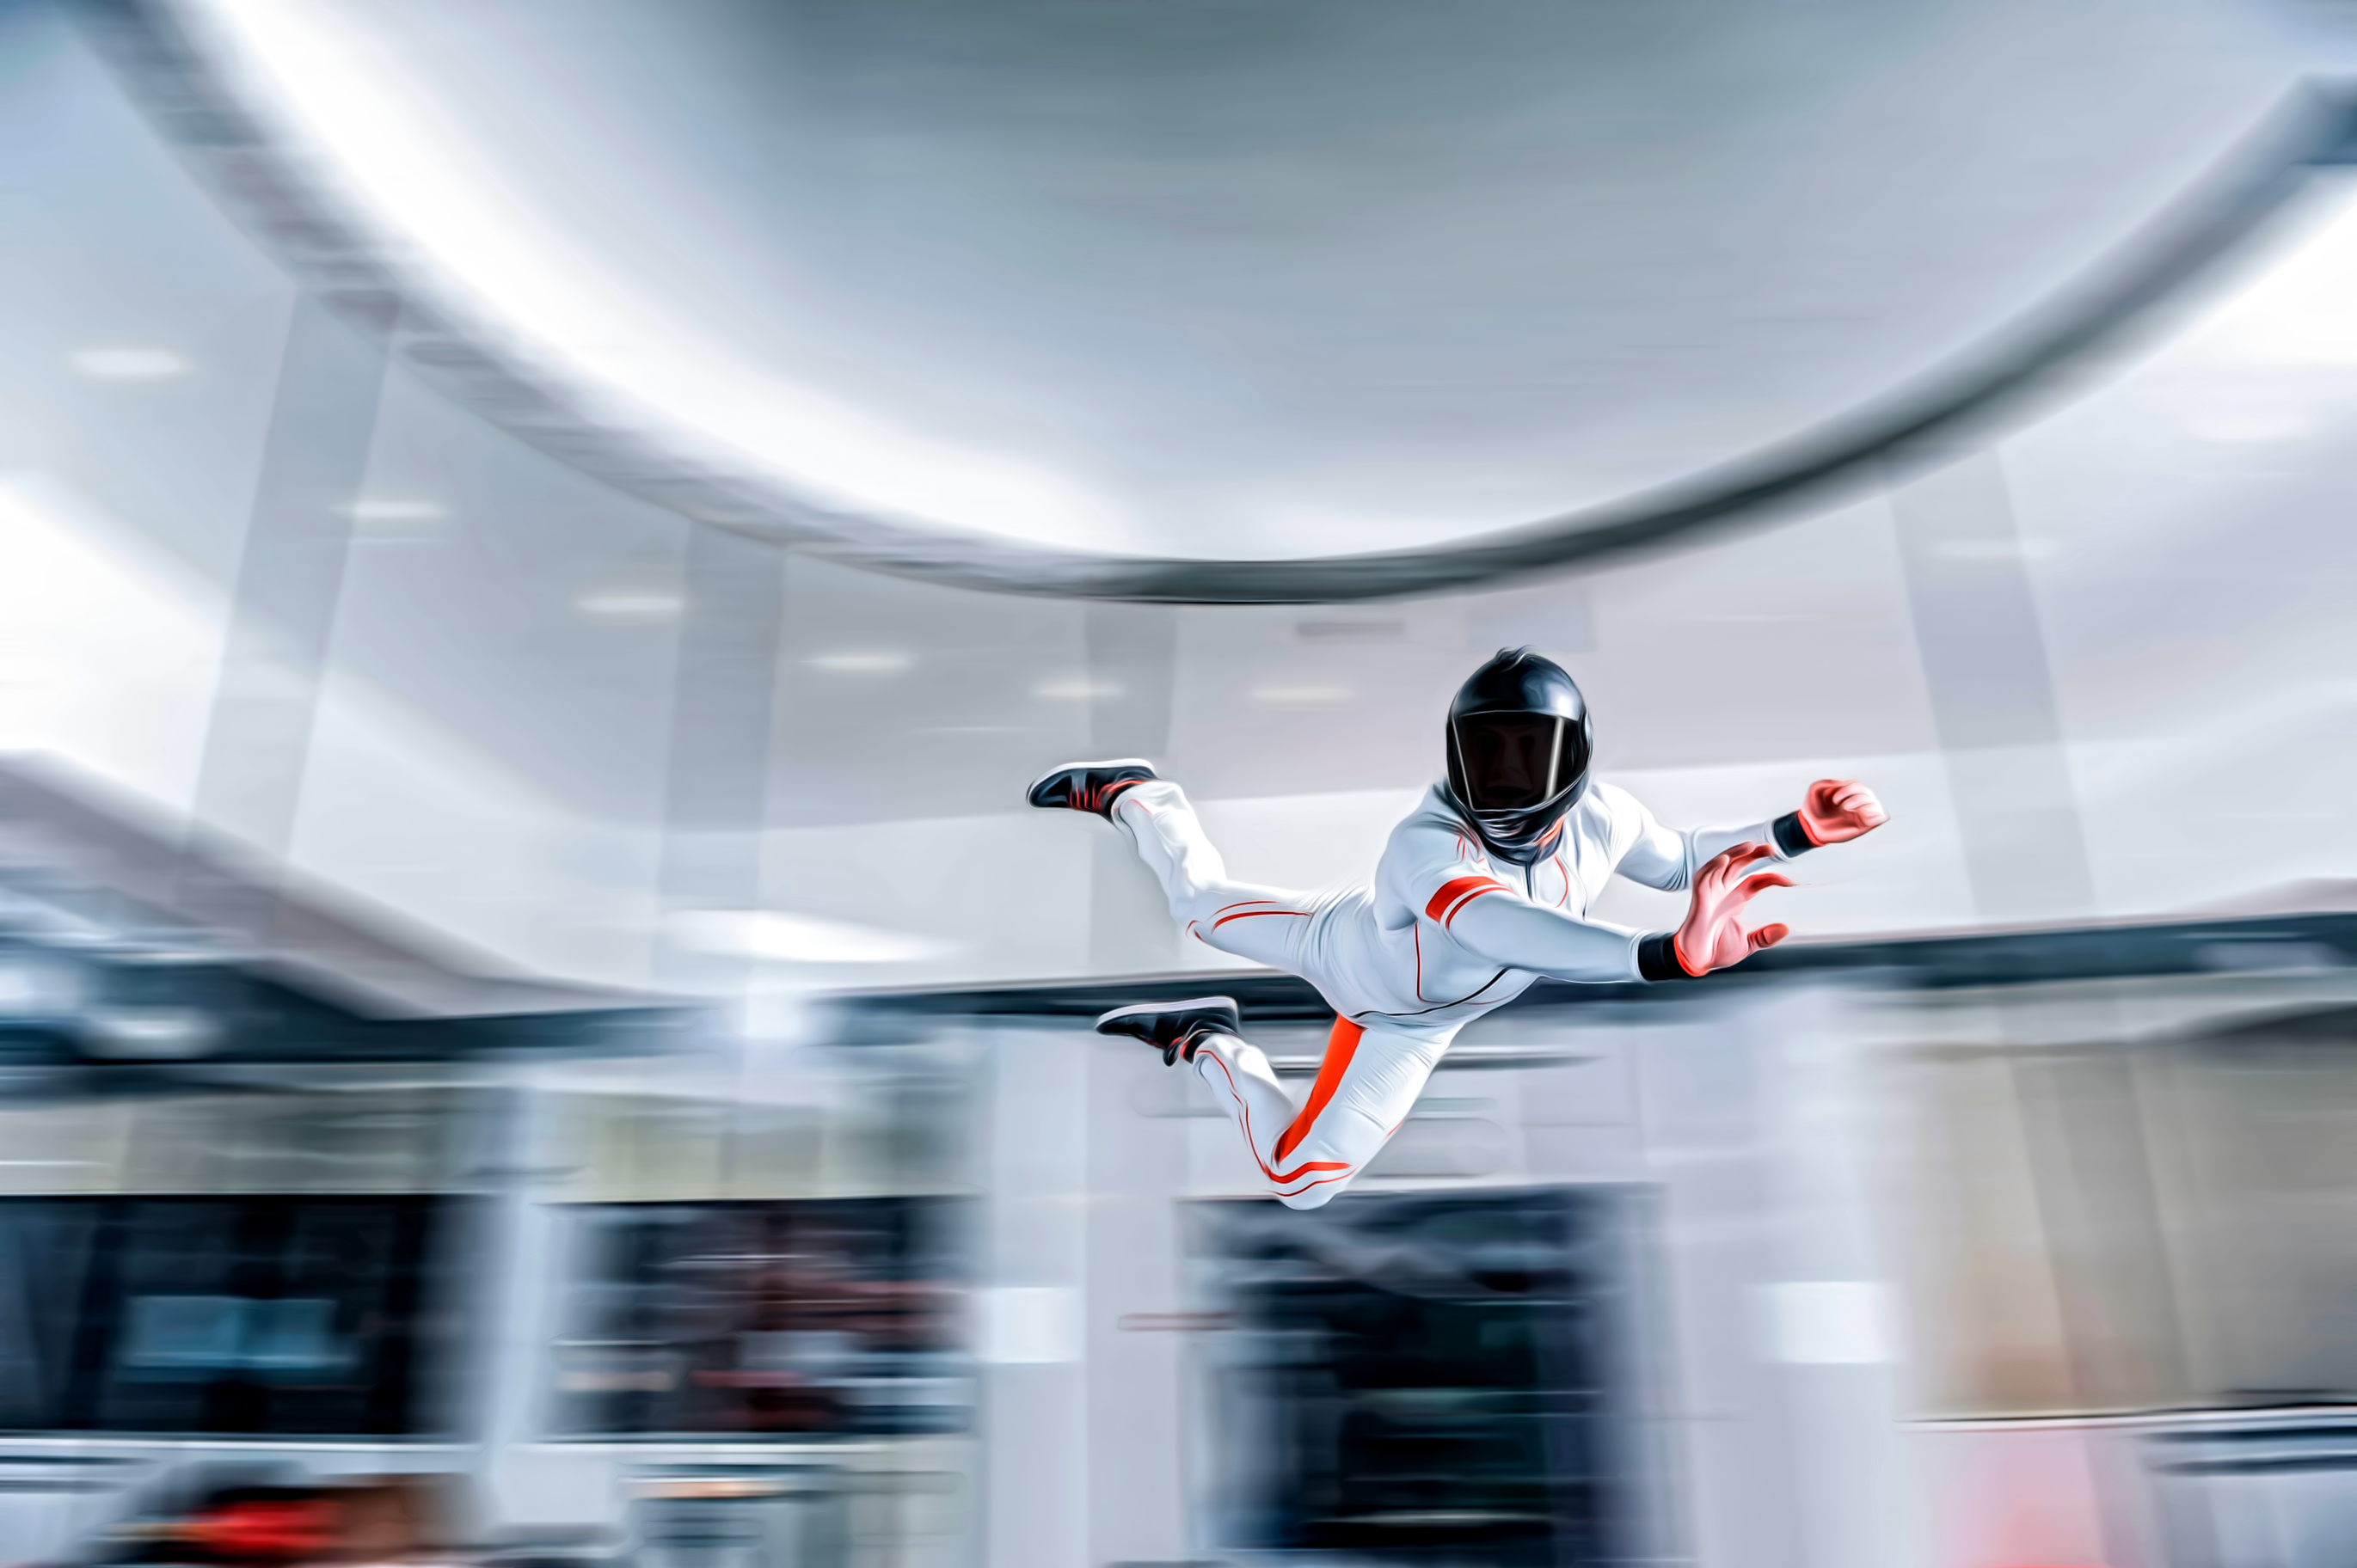 BOSS Indoor Skydiving Trip